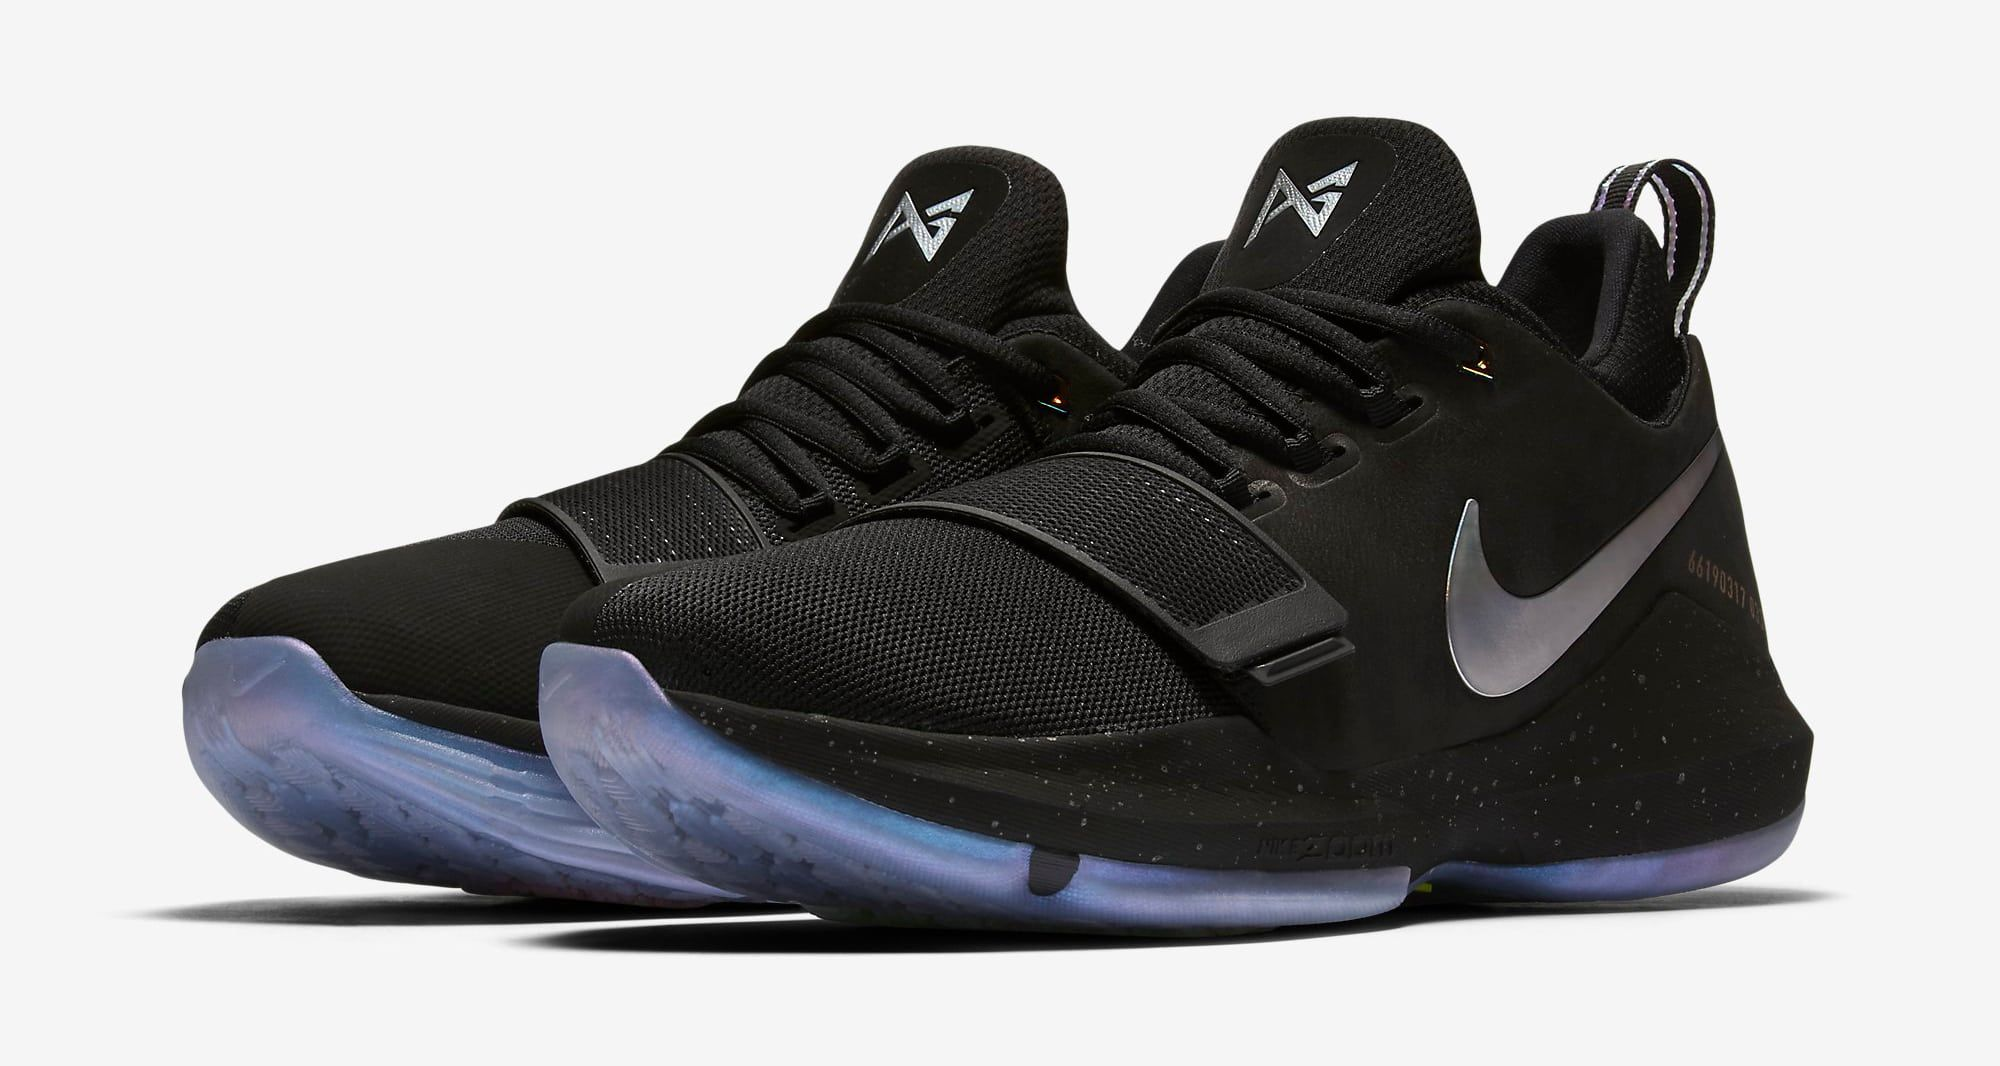 new concept 578fd 7f83a Paul George Signature Nike PG1 Shining | Kicks in 2019 ...